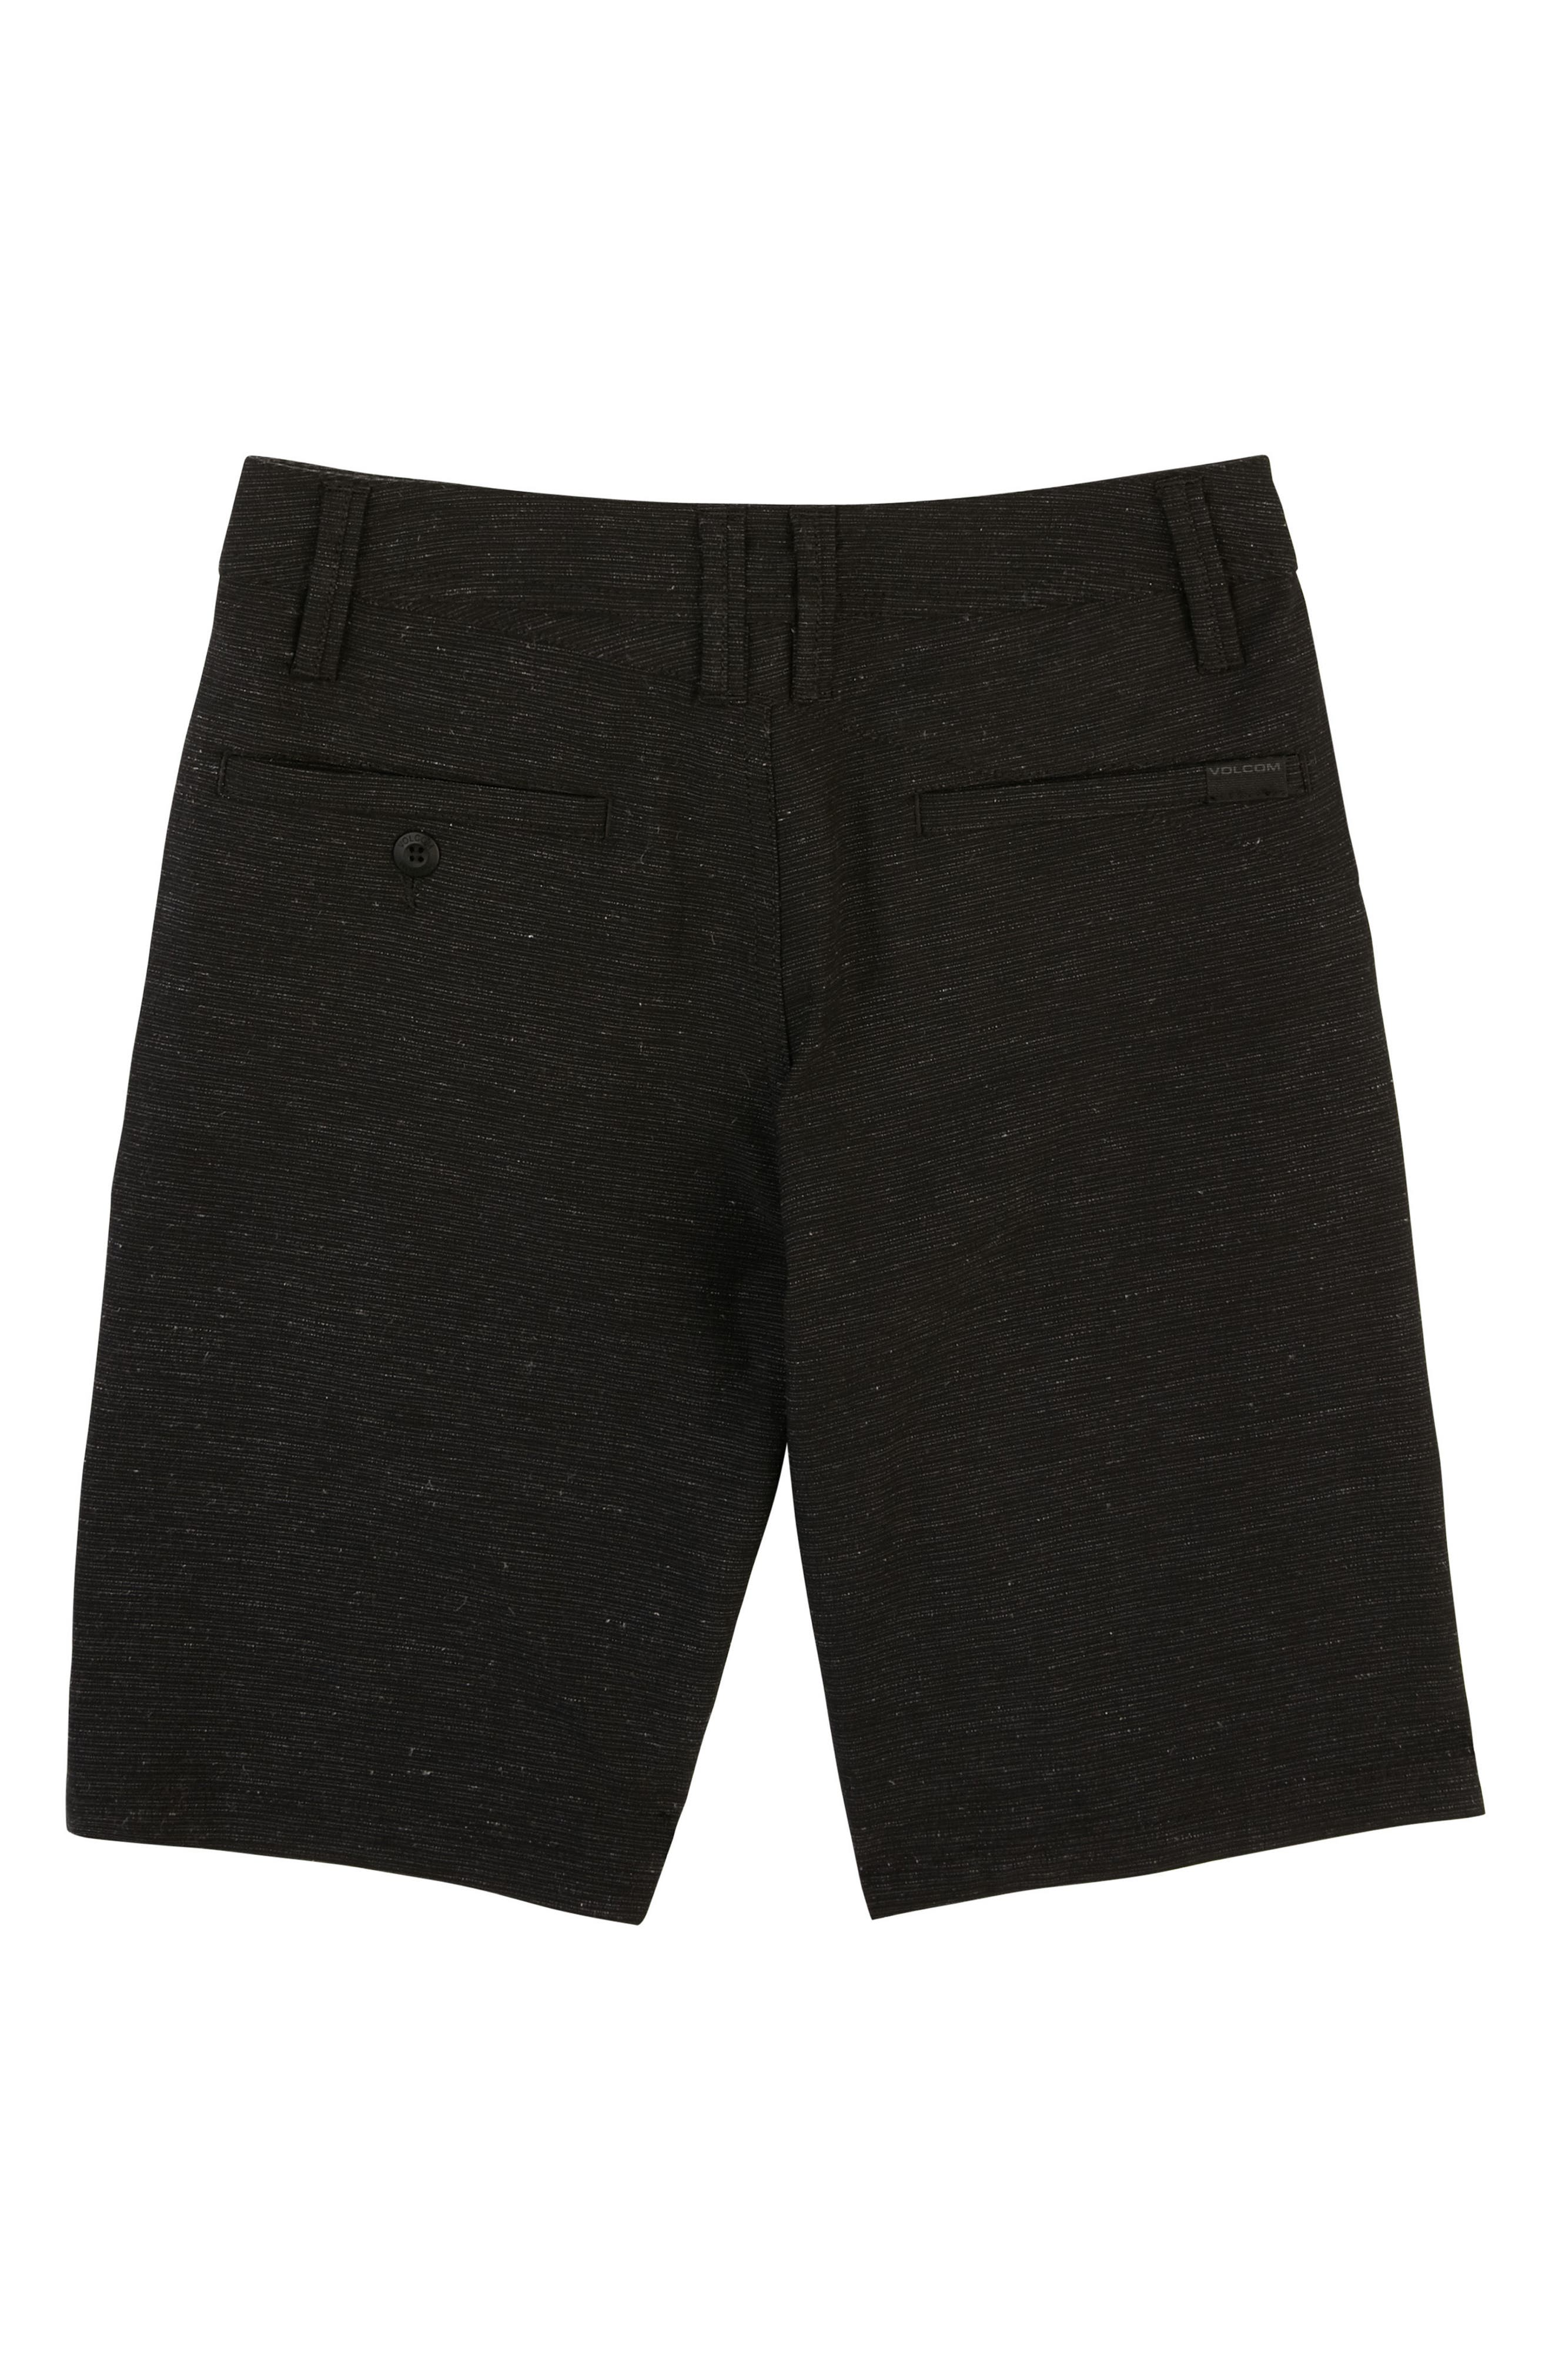 Surf N' Turf Slub Hybrid Shorts,                             Alternate thumbnail 2, color,                             Black